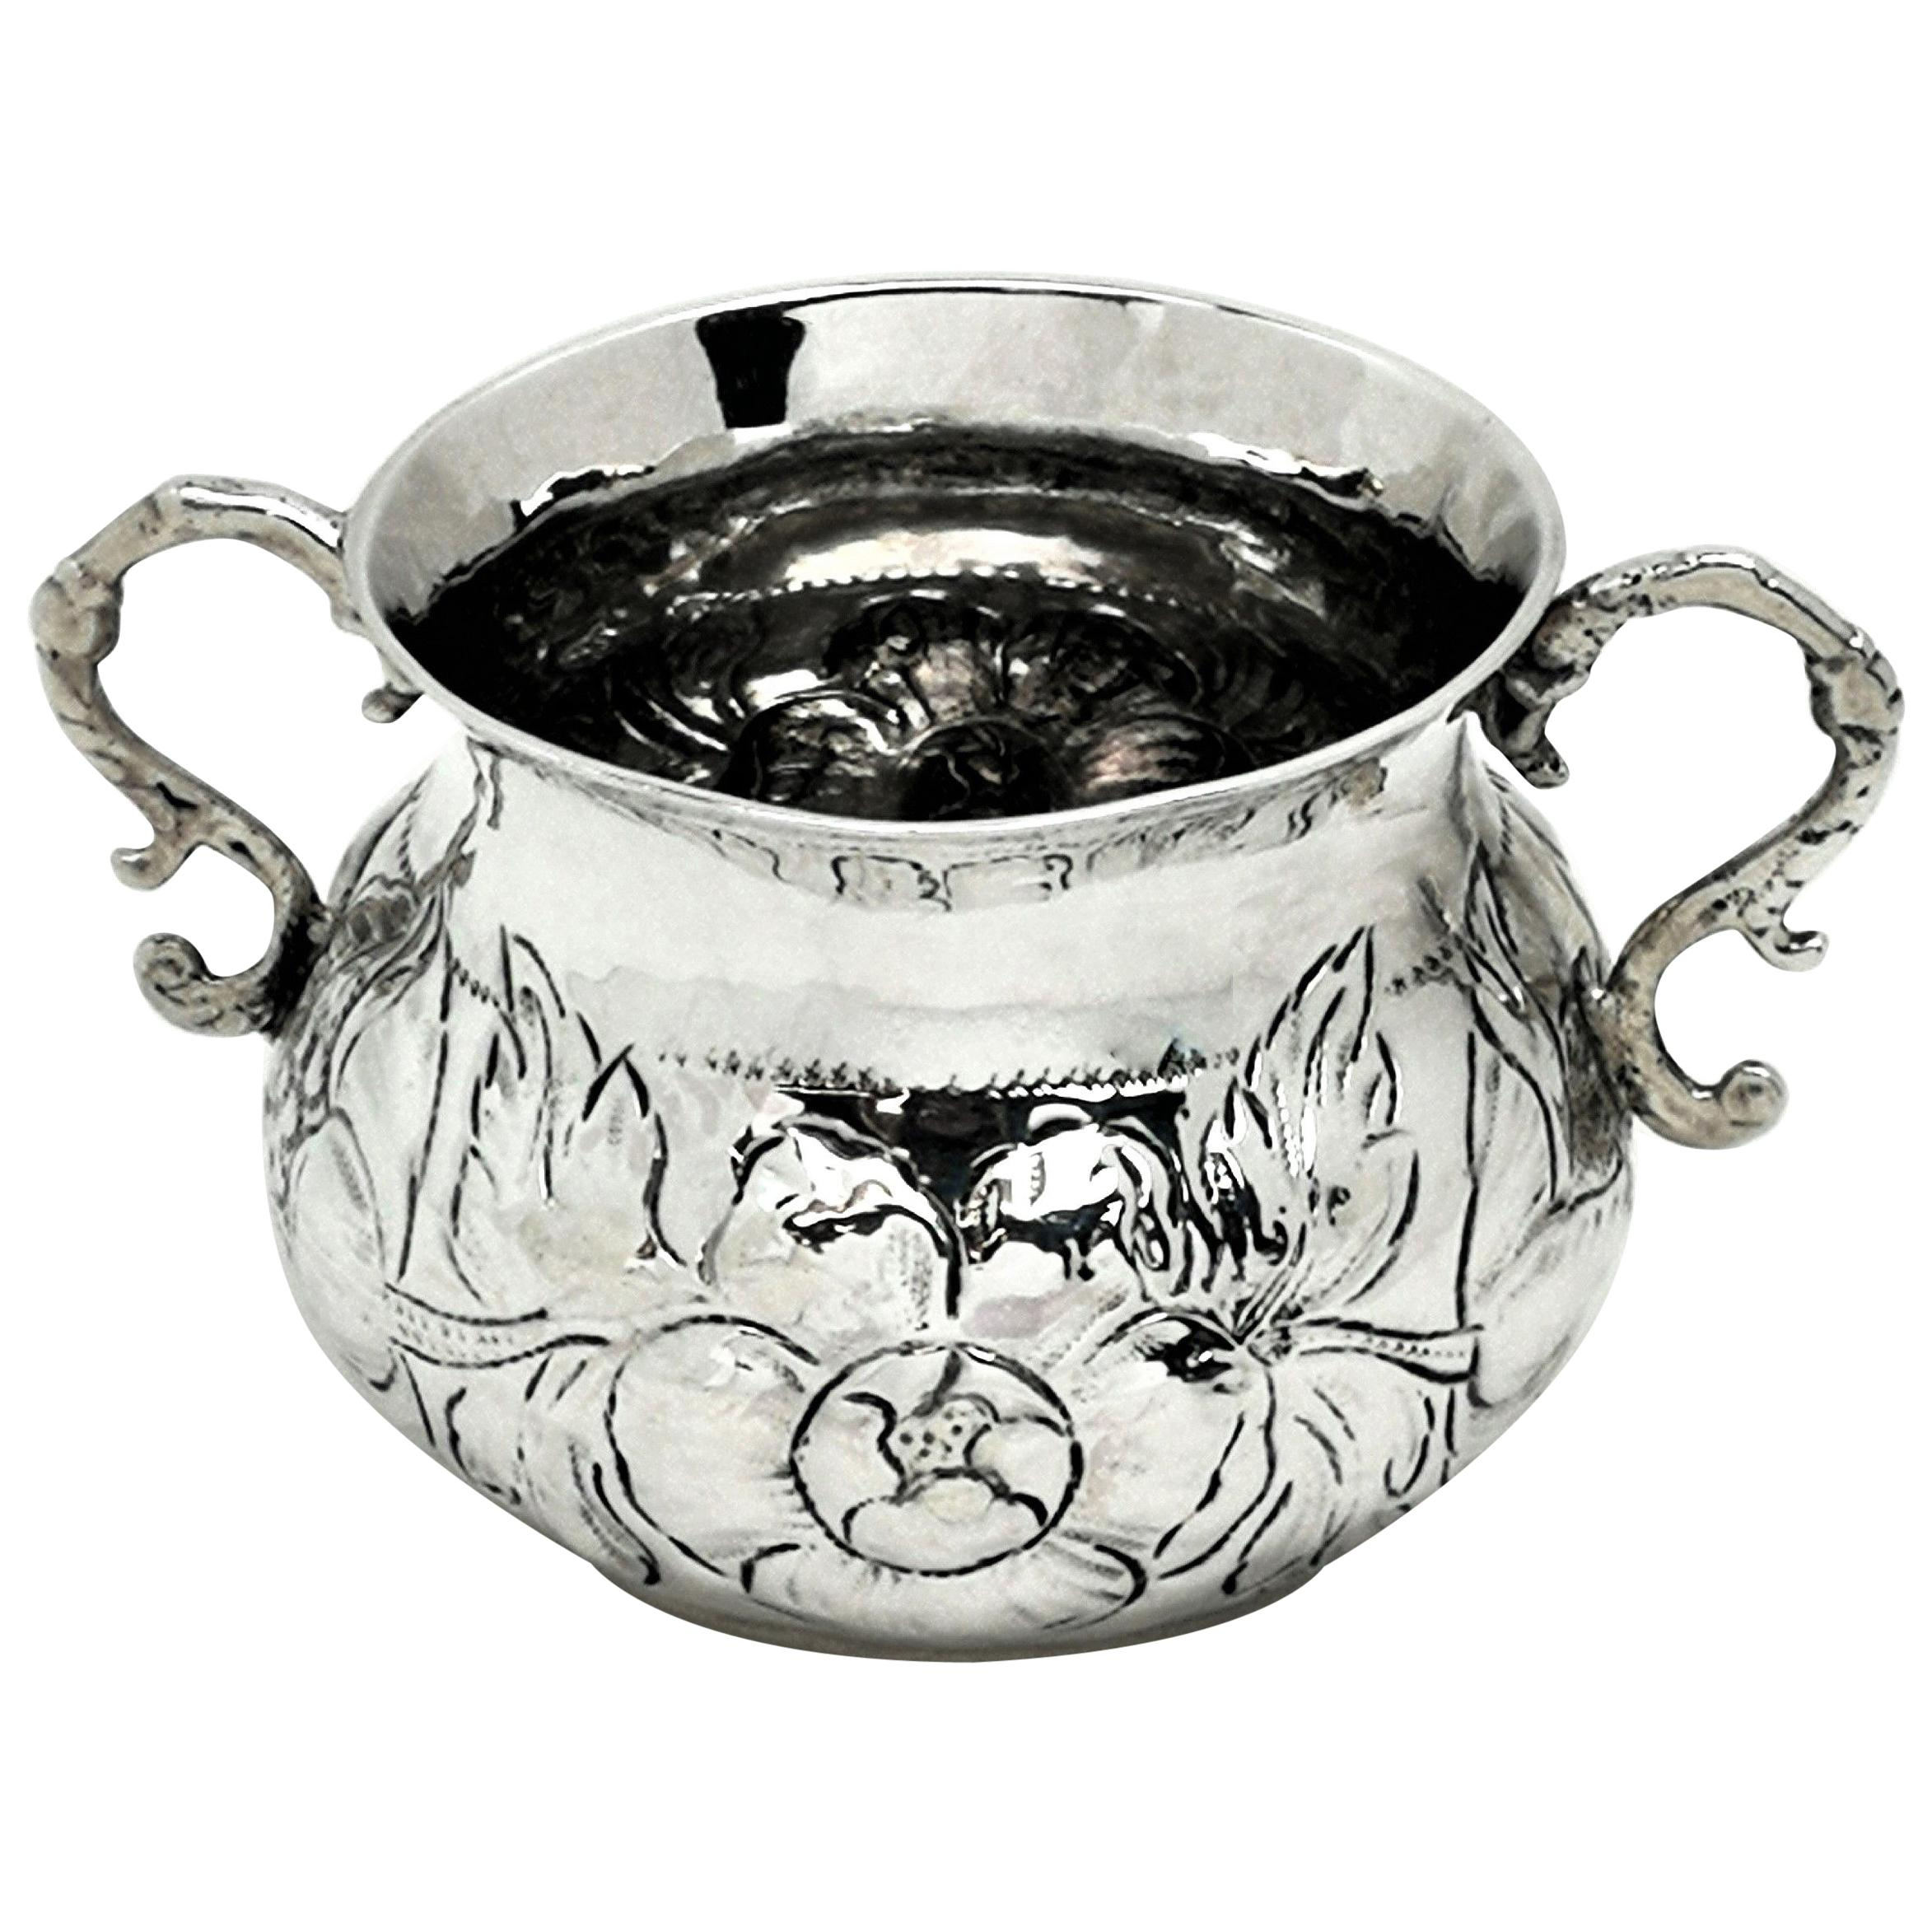 Early Antique Charles II Sterling Silver Porringer / Two Handled Cup  c.1675